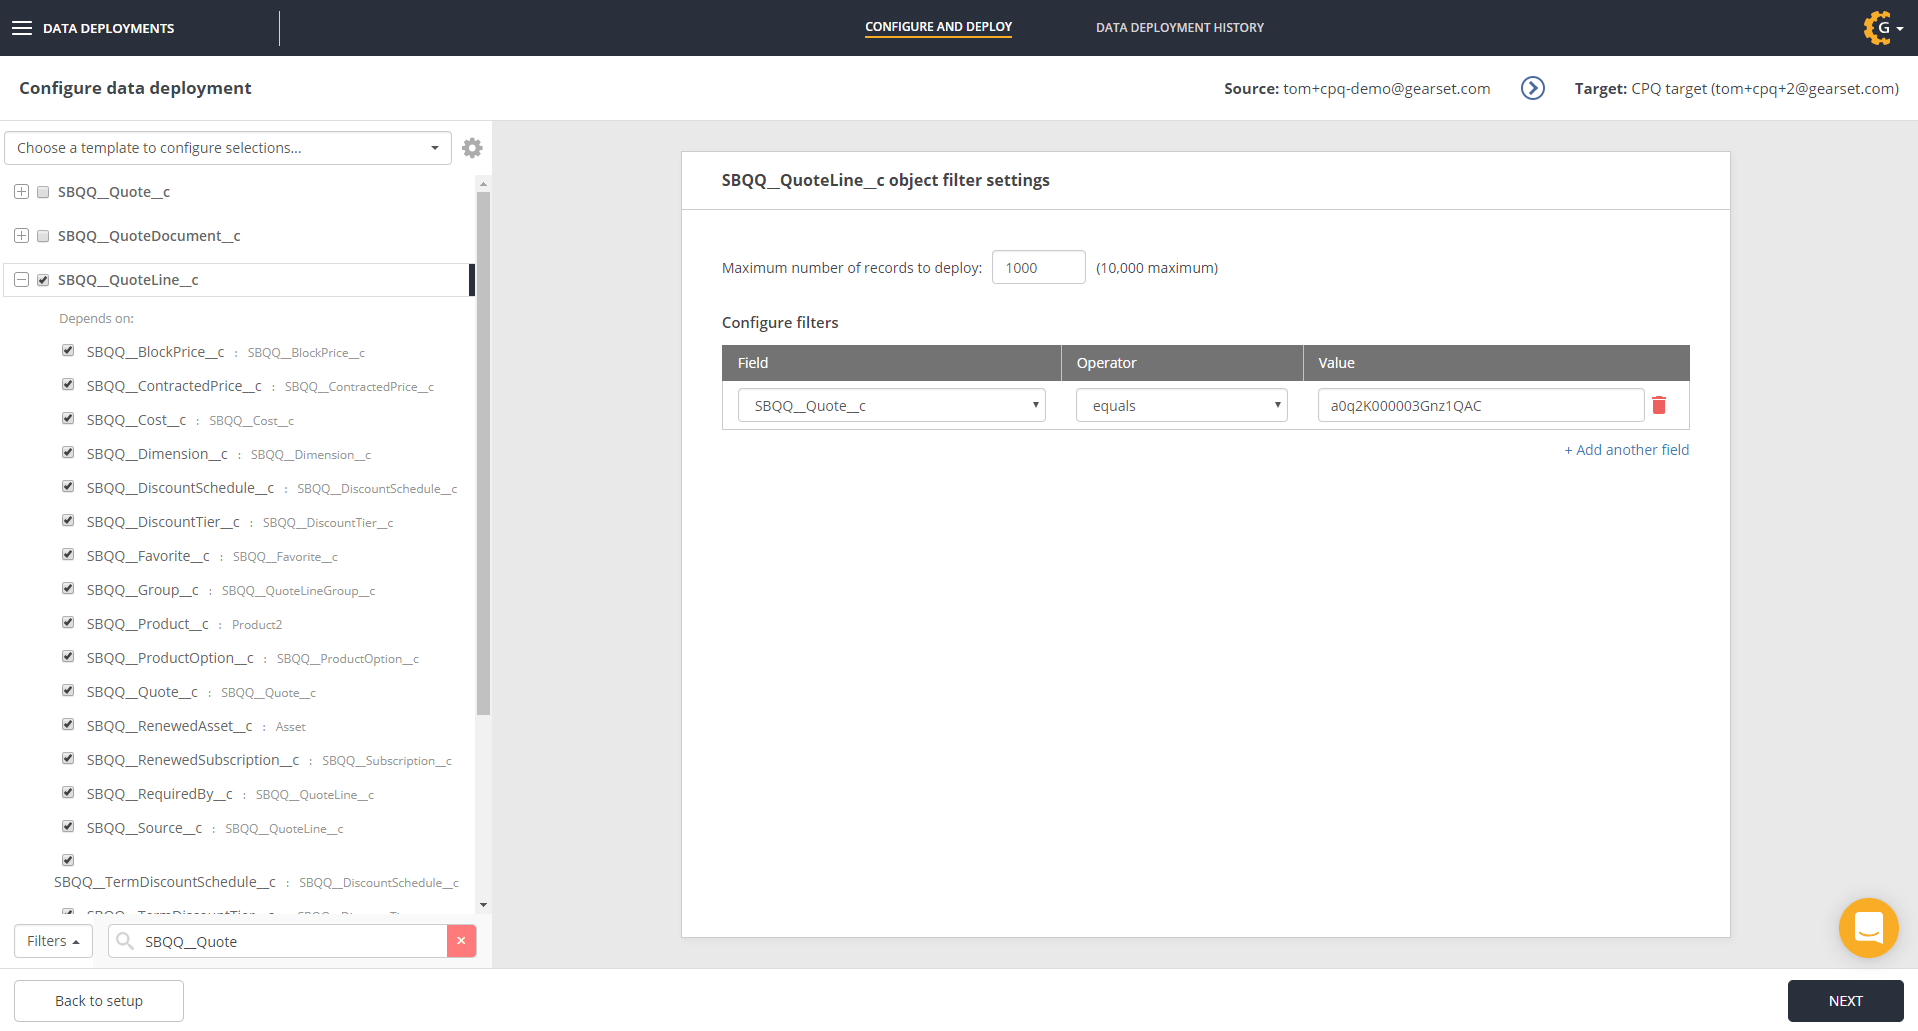 Select the quote line object for deployment